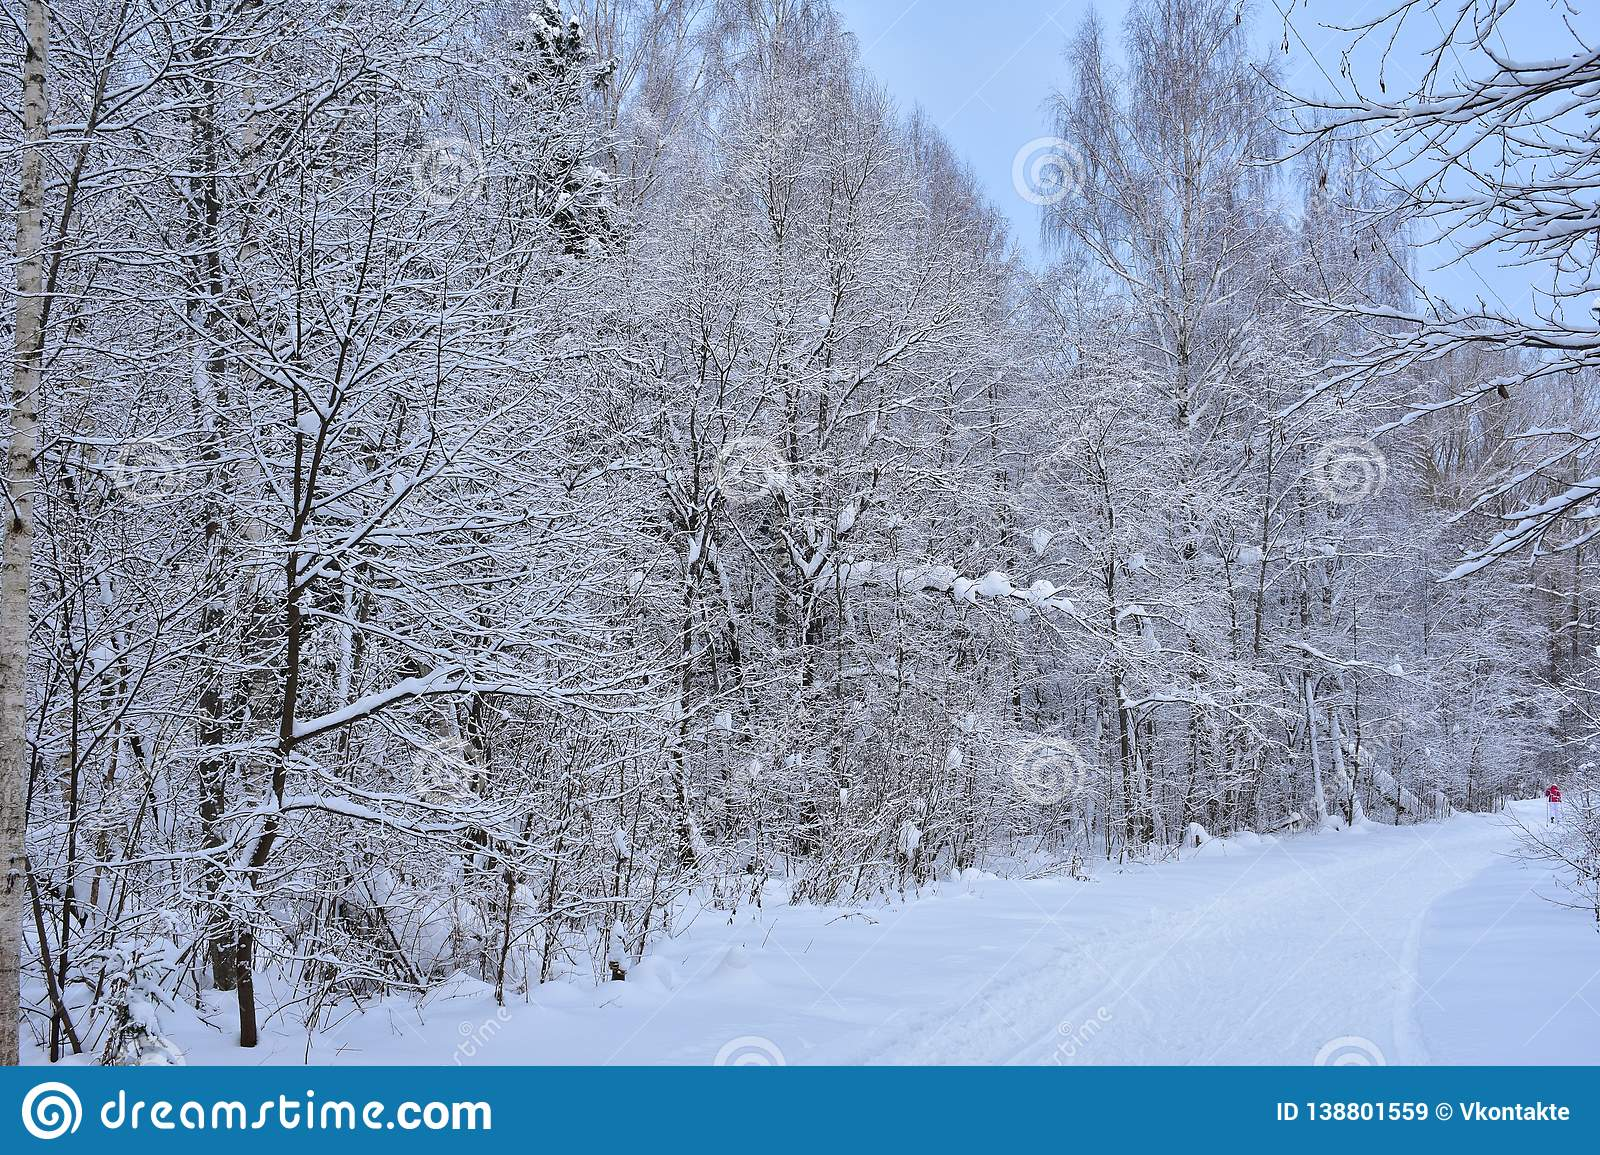 Road skiing and winter forest live their lives. Everything is quiet and solemn in the winter forest